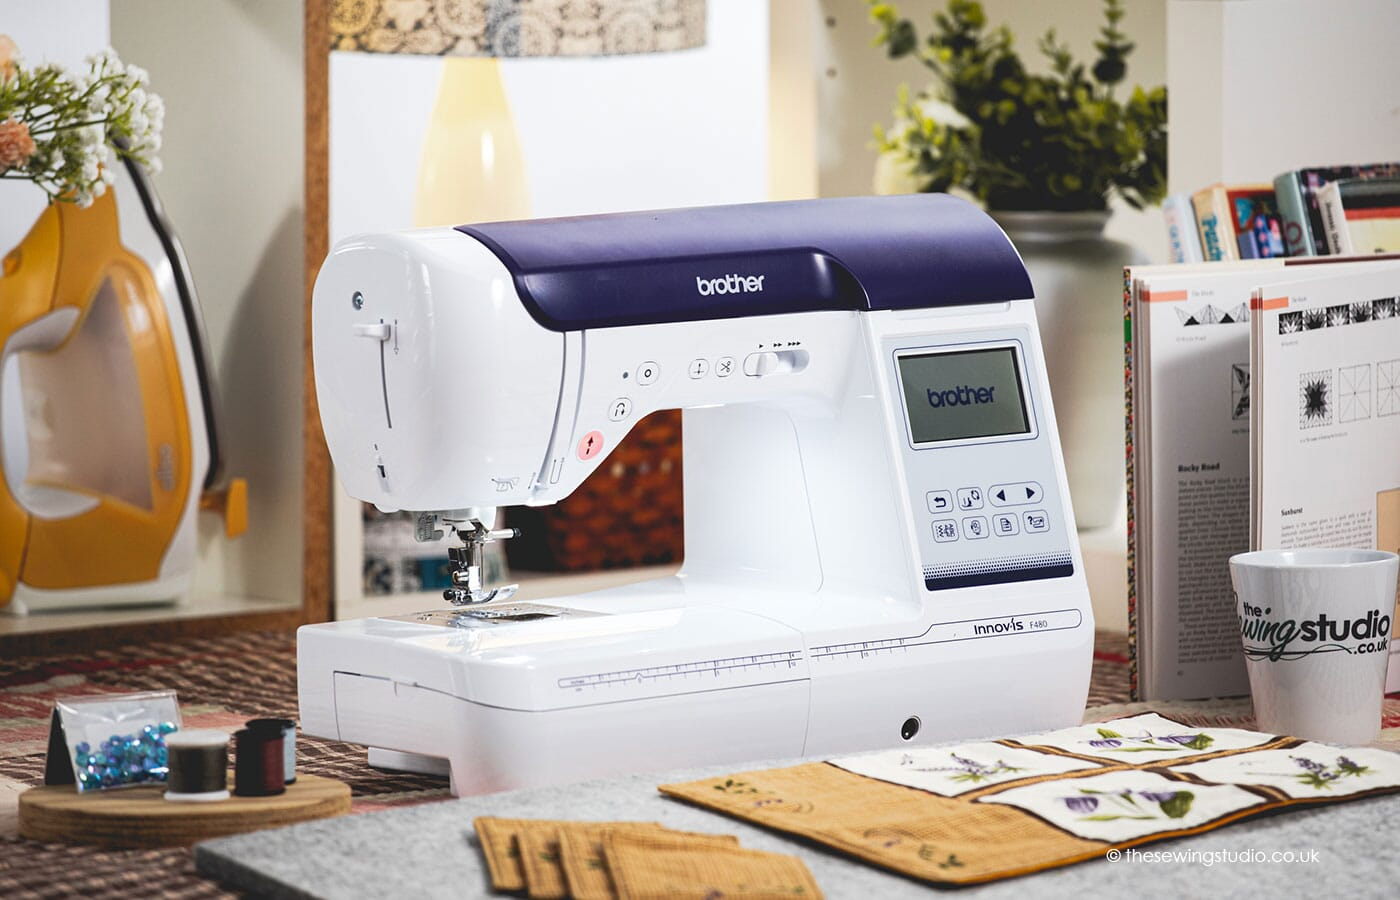 Brother F480 Sewing & Embroidery Machine in a Sewing Room